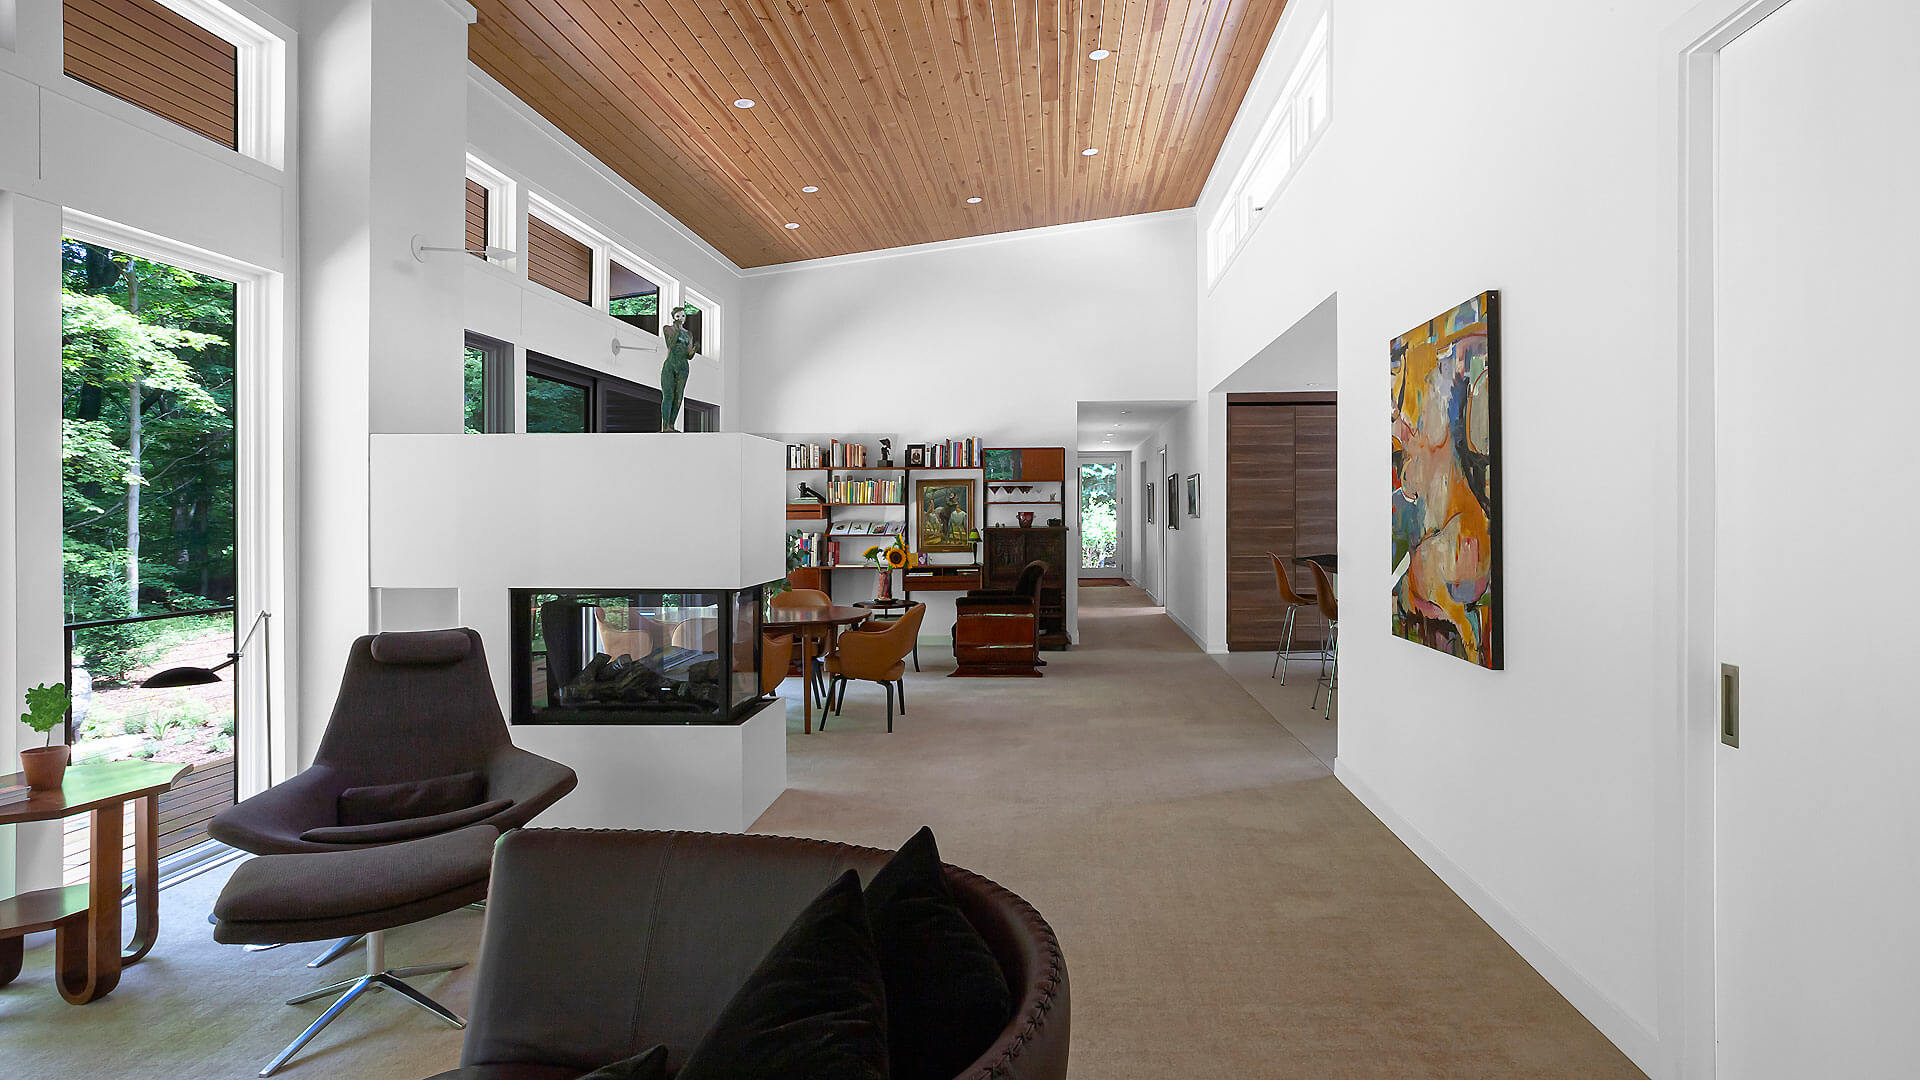 Open concept Living-Dining space optimizes natural light and panoramic views of Pier Cove Valley (photo view looking east) - Bridge House - Fenneville, Michigan - Lake Michigan